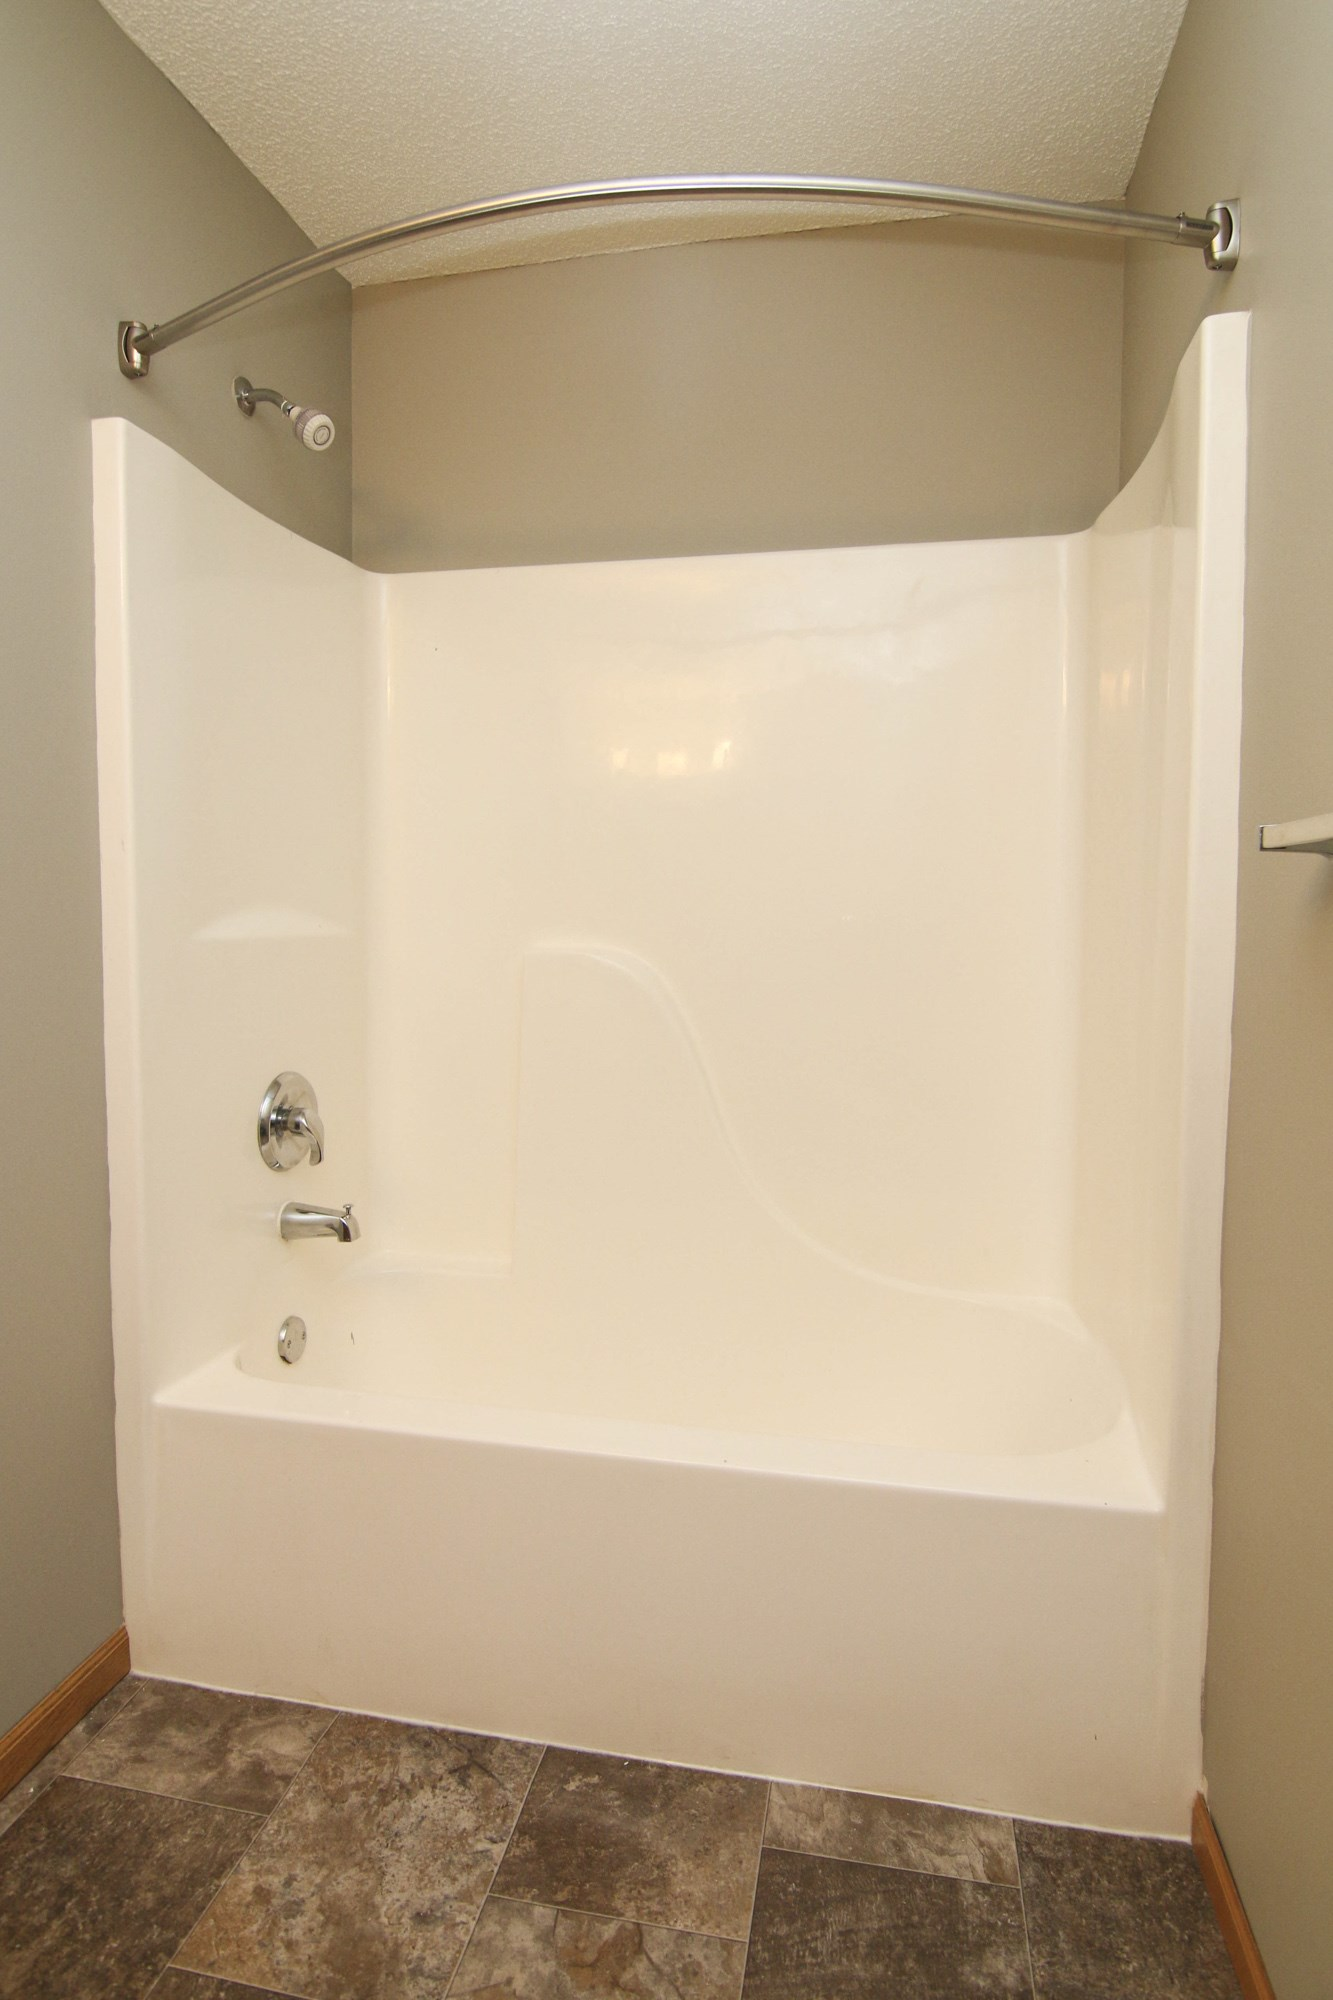 Interiors-Renovated bathroom at Northbrook Apartments